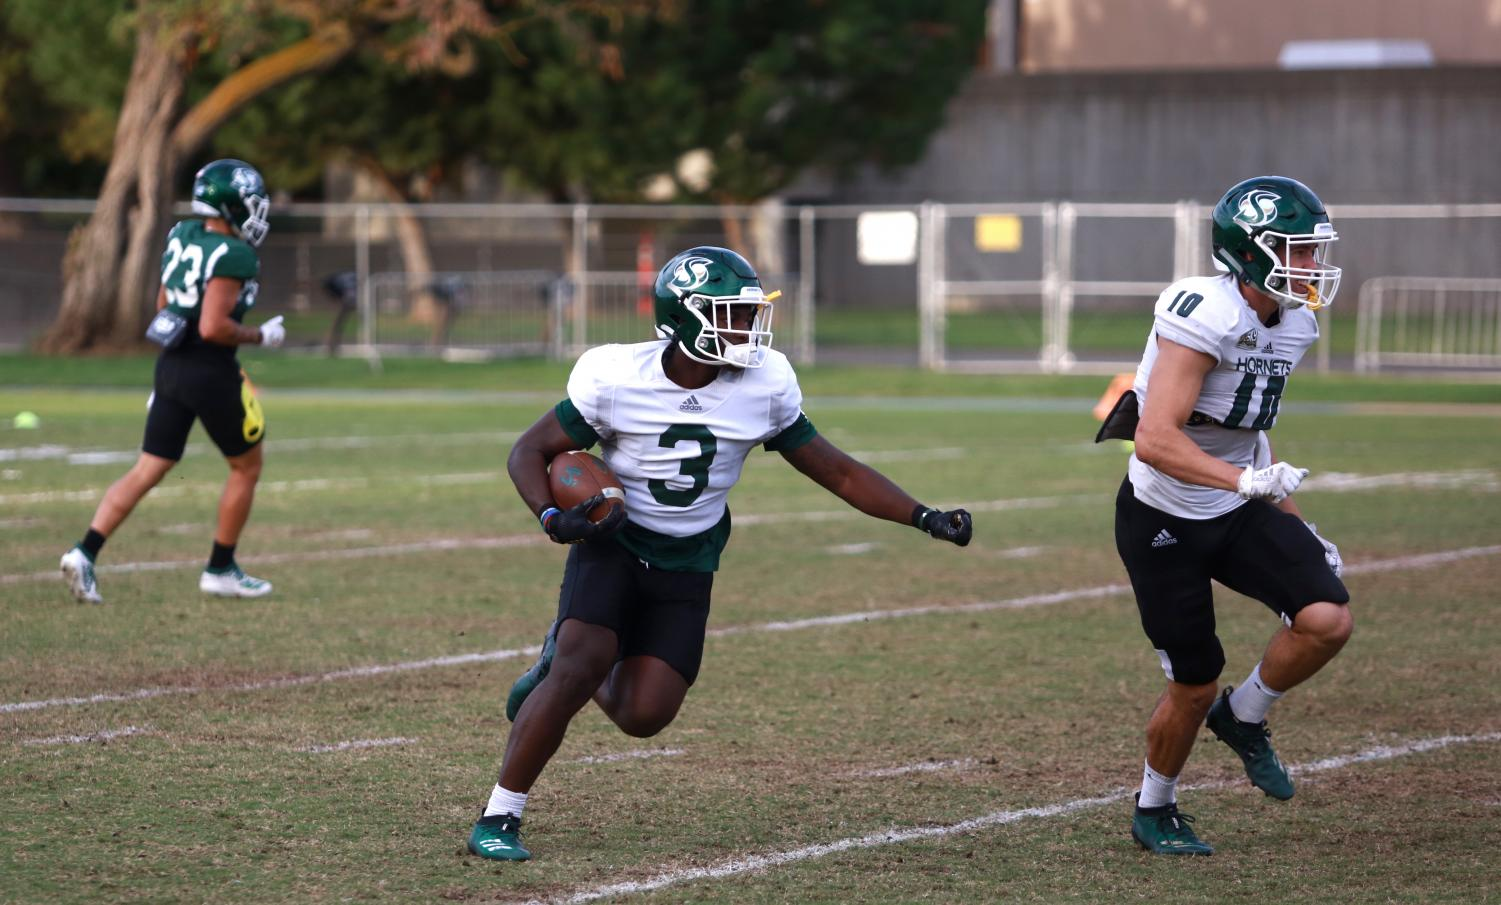 Sac State freshman running back Marcus Fulcher returns a kickoff with freshman wide receiver Parker Clayton as his lead blocker during practice Tuesday, Oct. 8 at the practice field. The Hornets play at No. 6 Montana State Saturday.